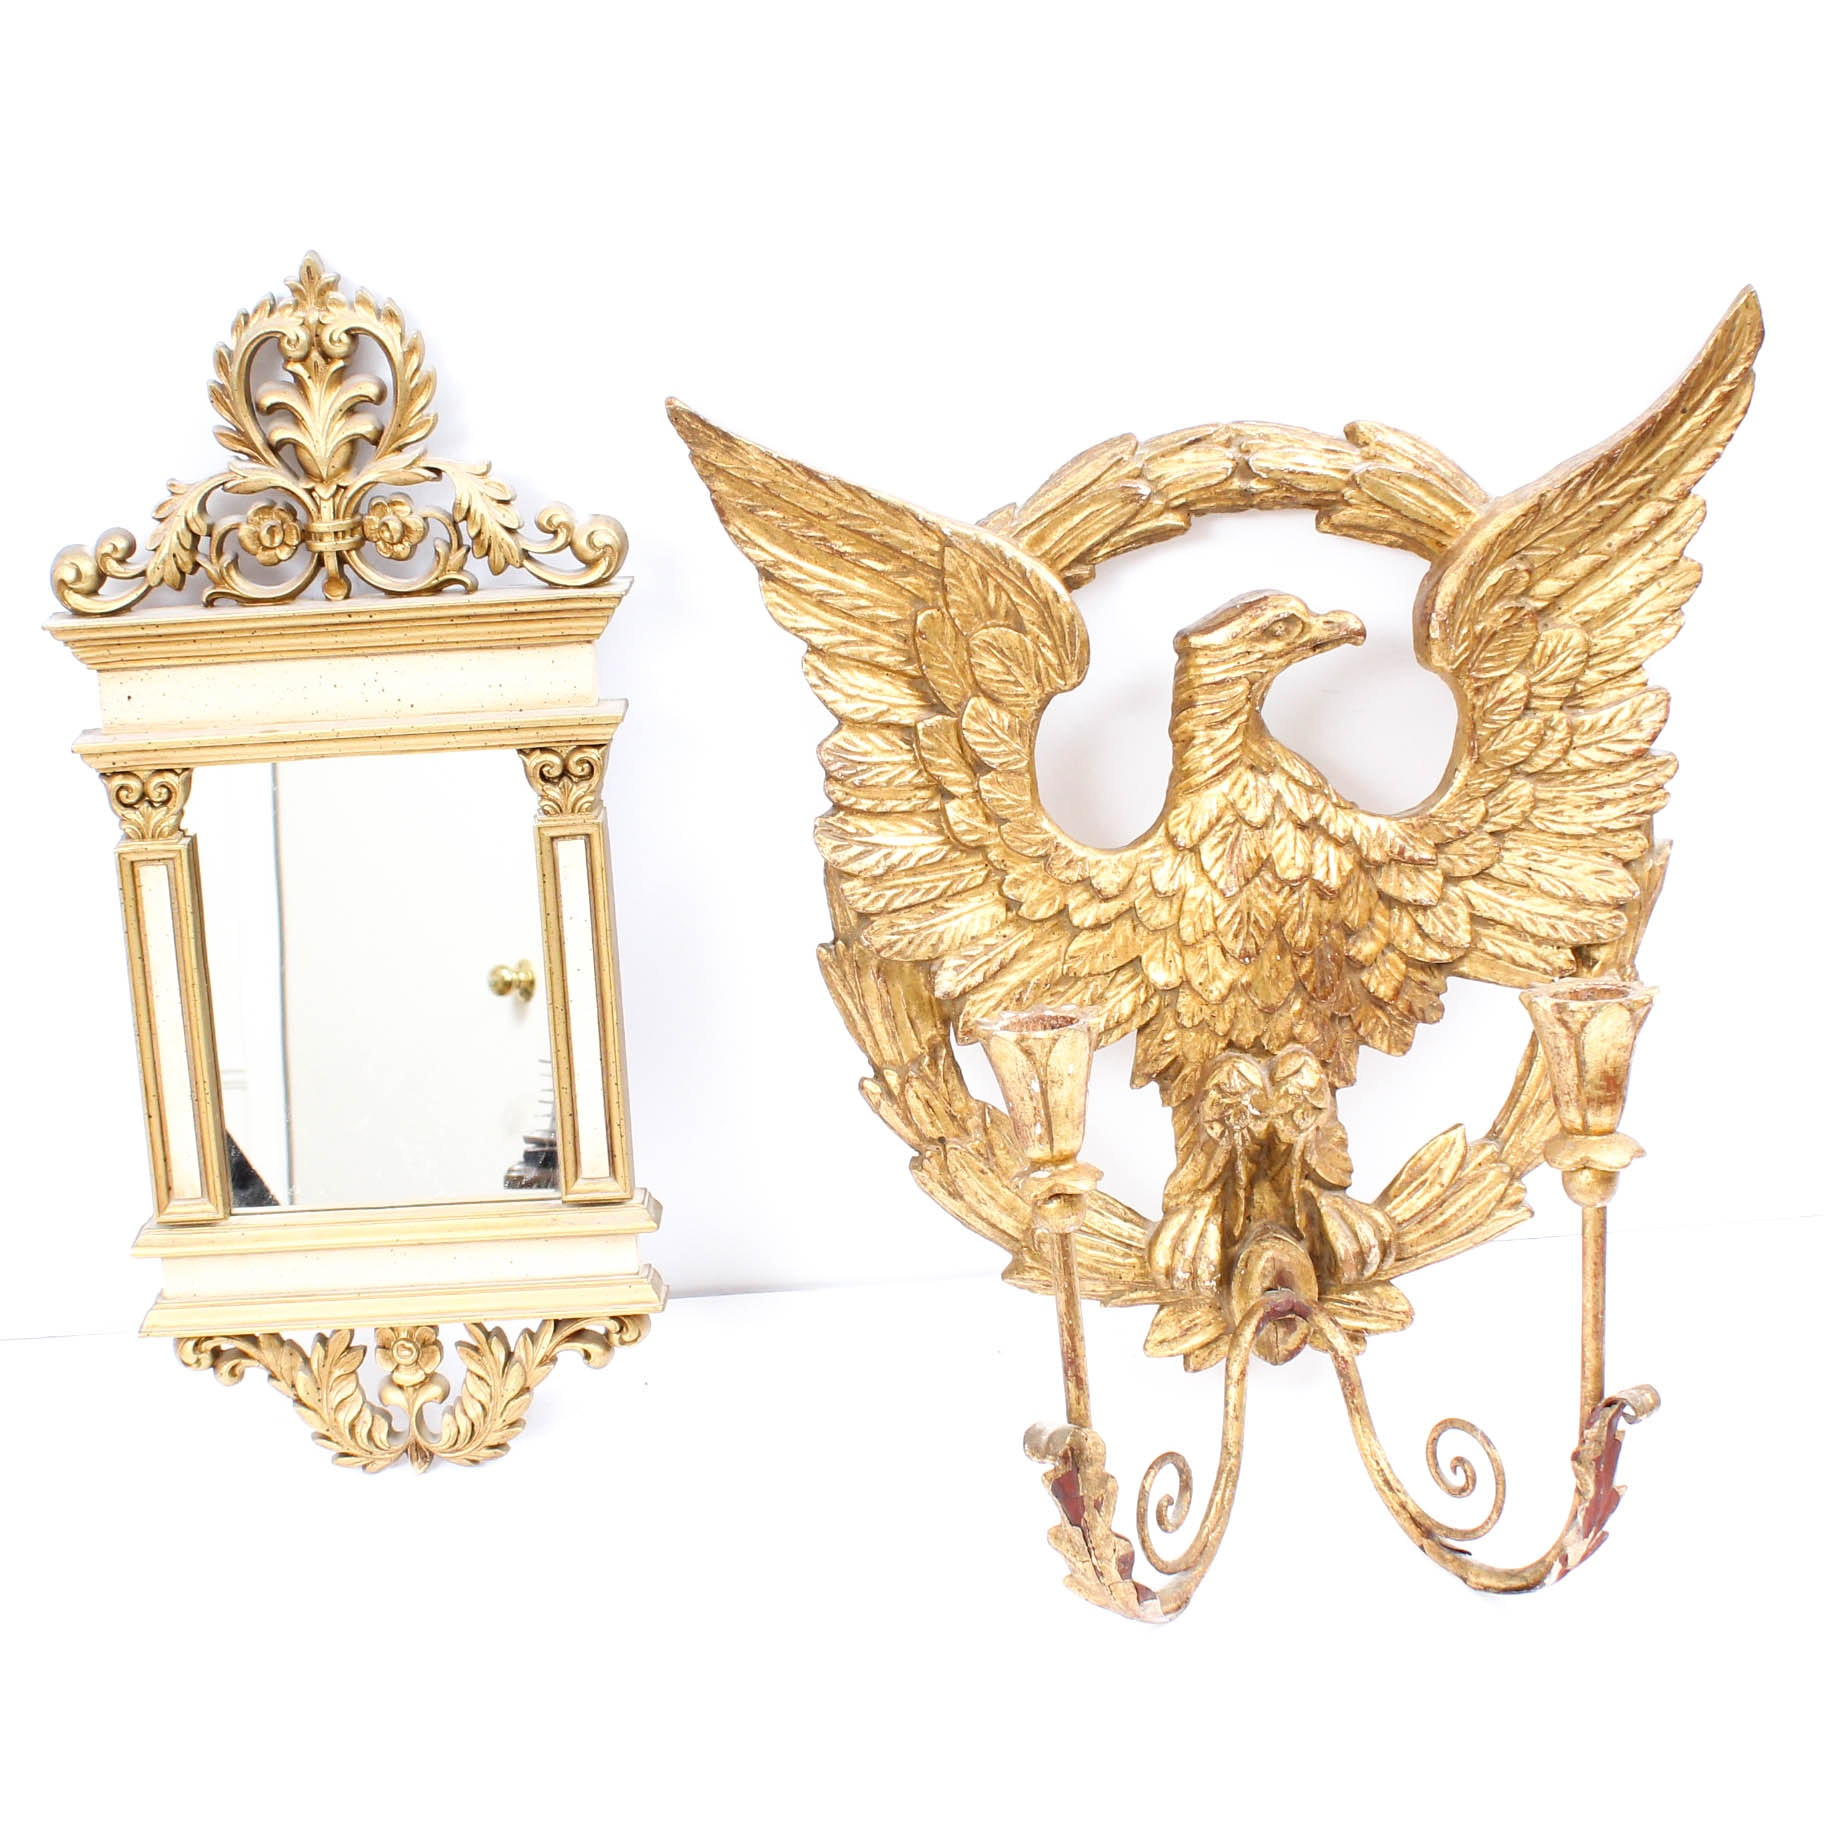 Gold Toned Wall Sconce and Neoclassical Wall Mirror